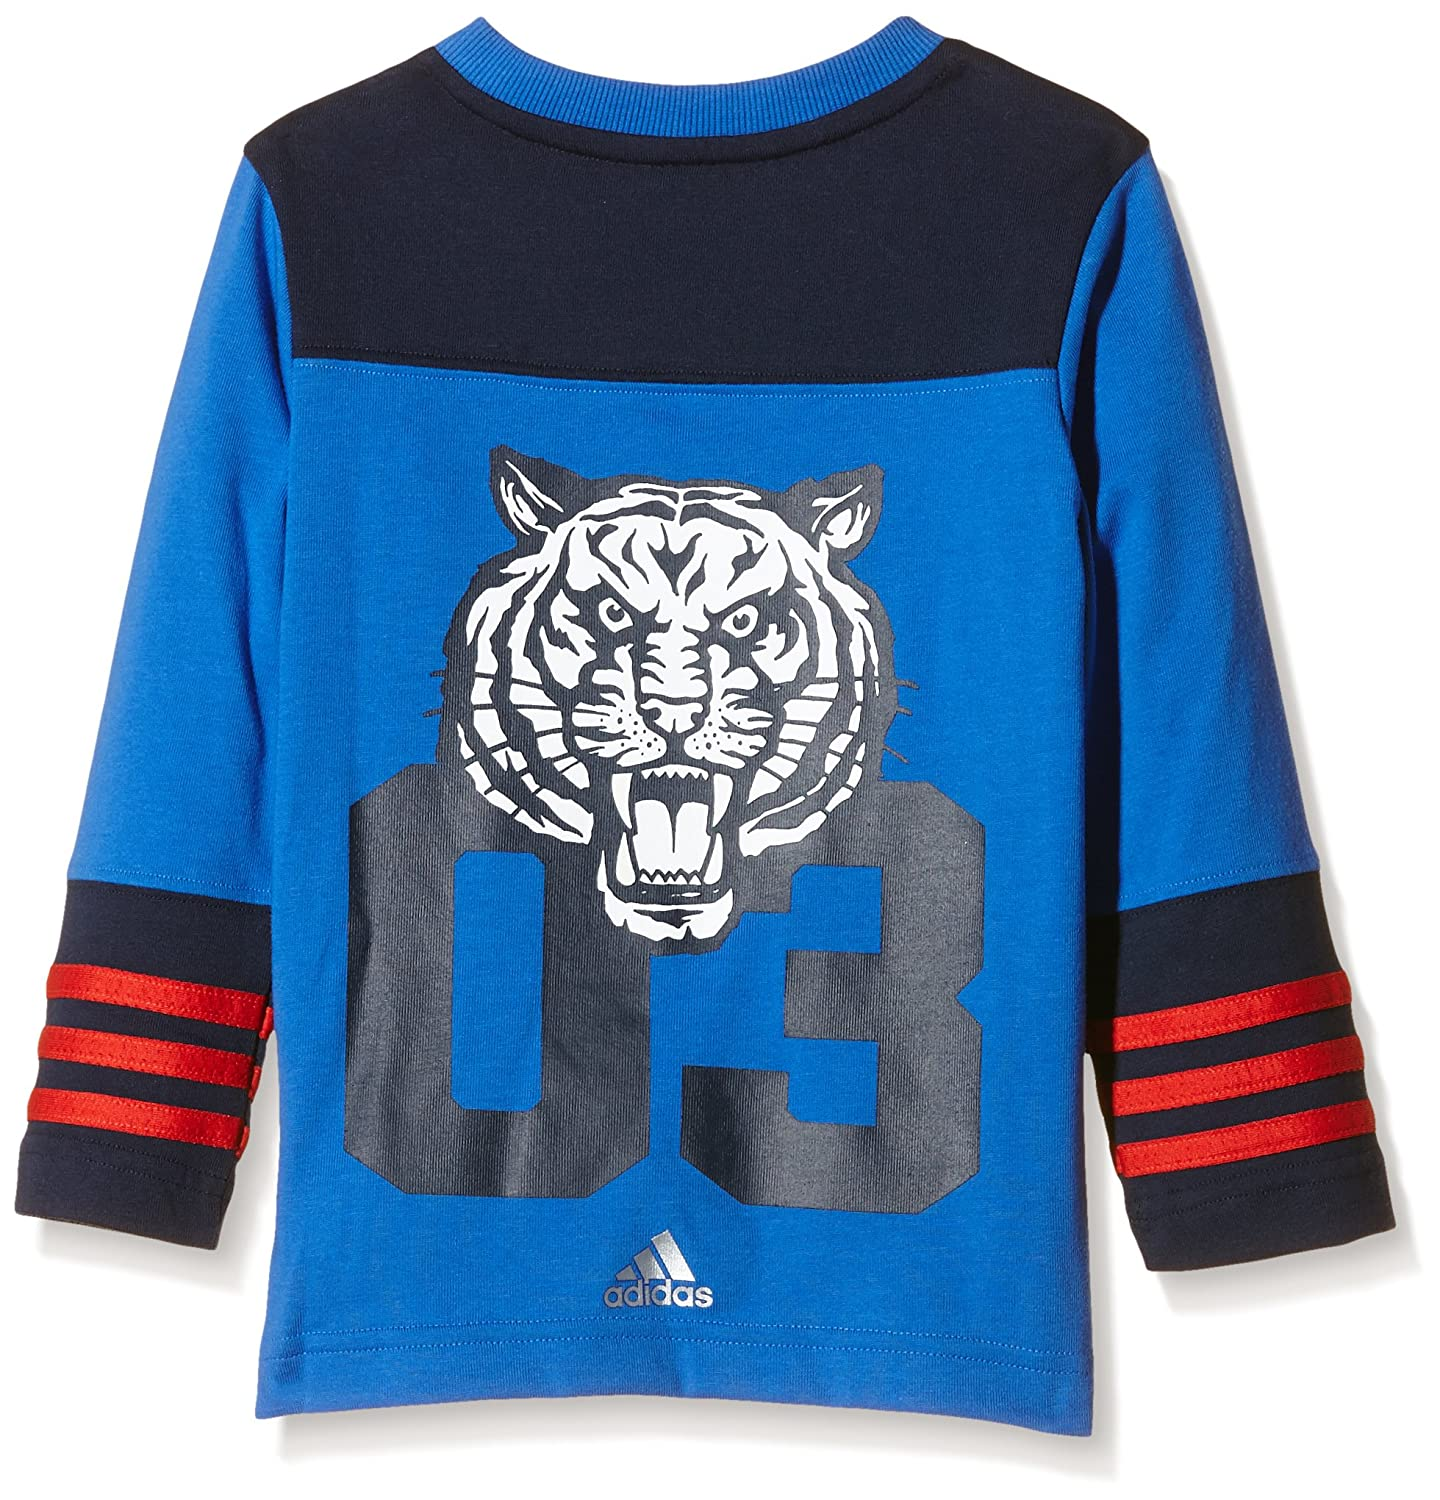 adidas Boys Long-Sleeved T-Shirt Team Multi-Coloured Blau//Grau//Rot